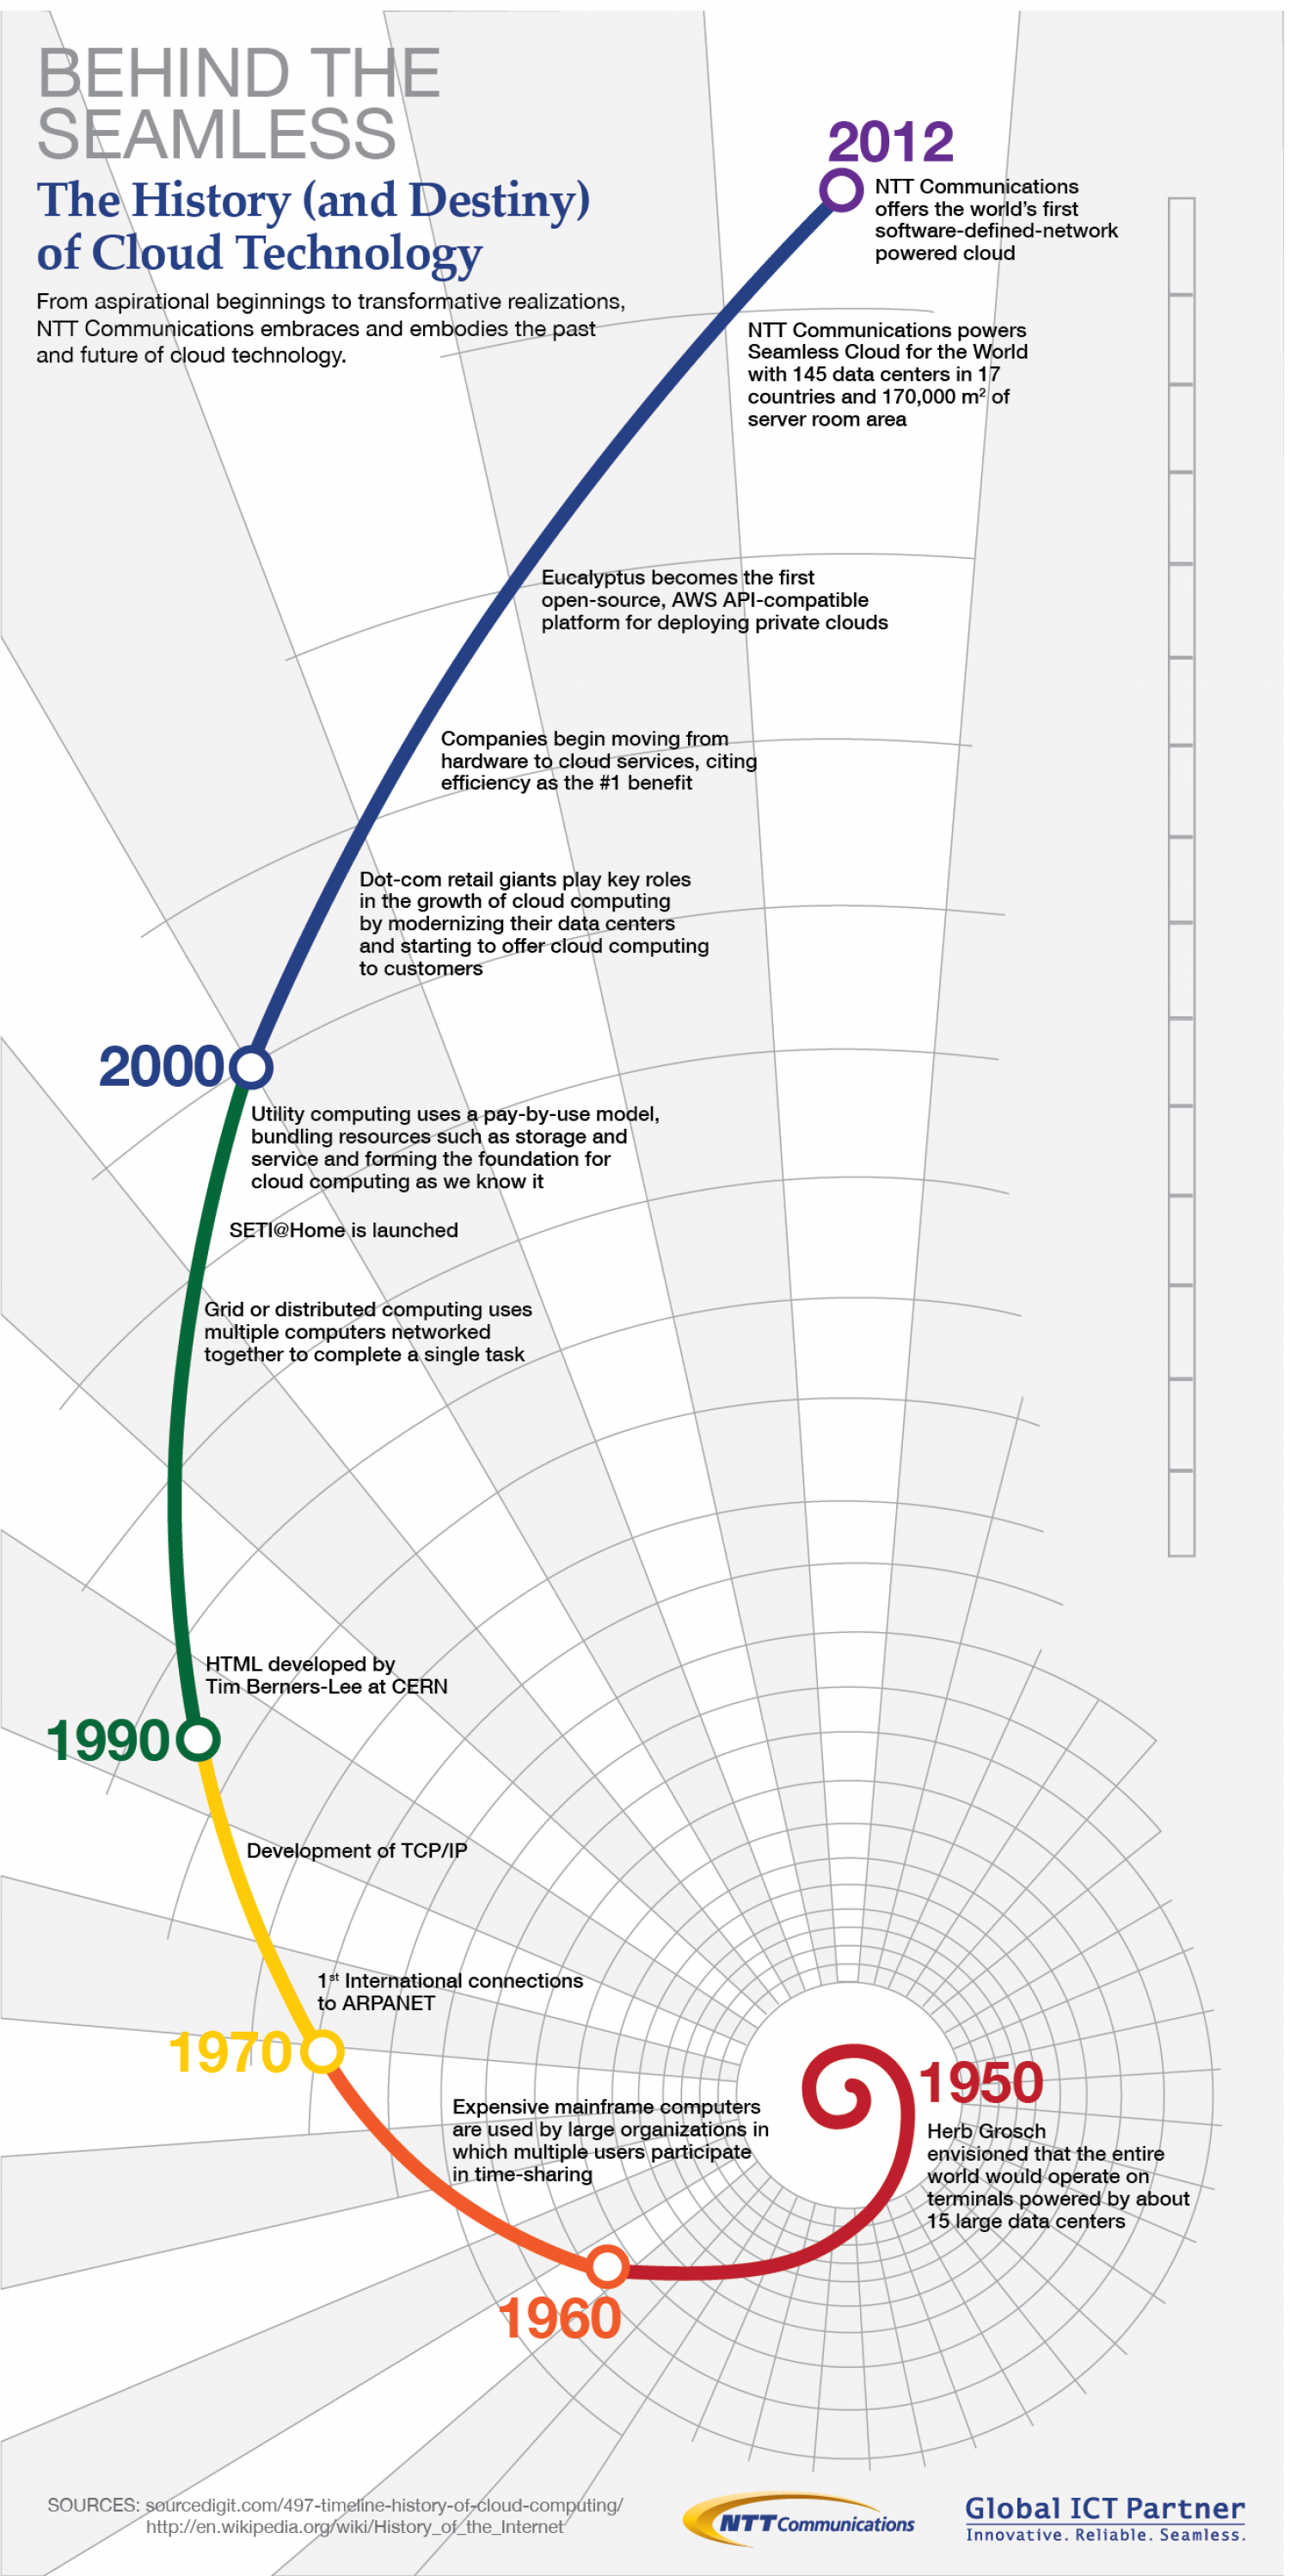 The Evolution Of The Cloud From 1950 - 2012 Infographic